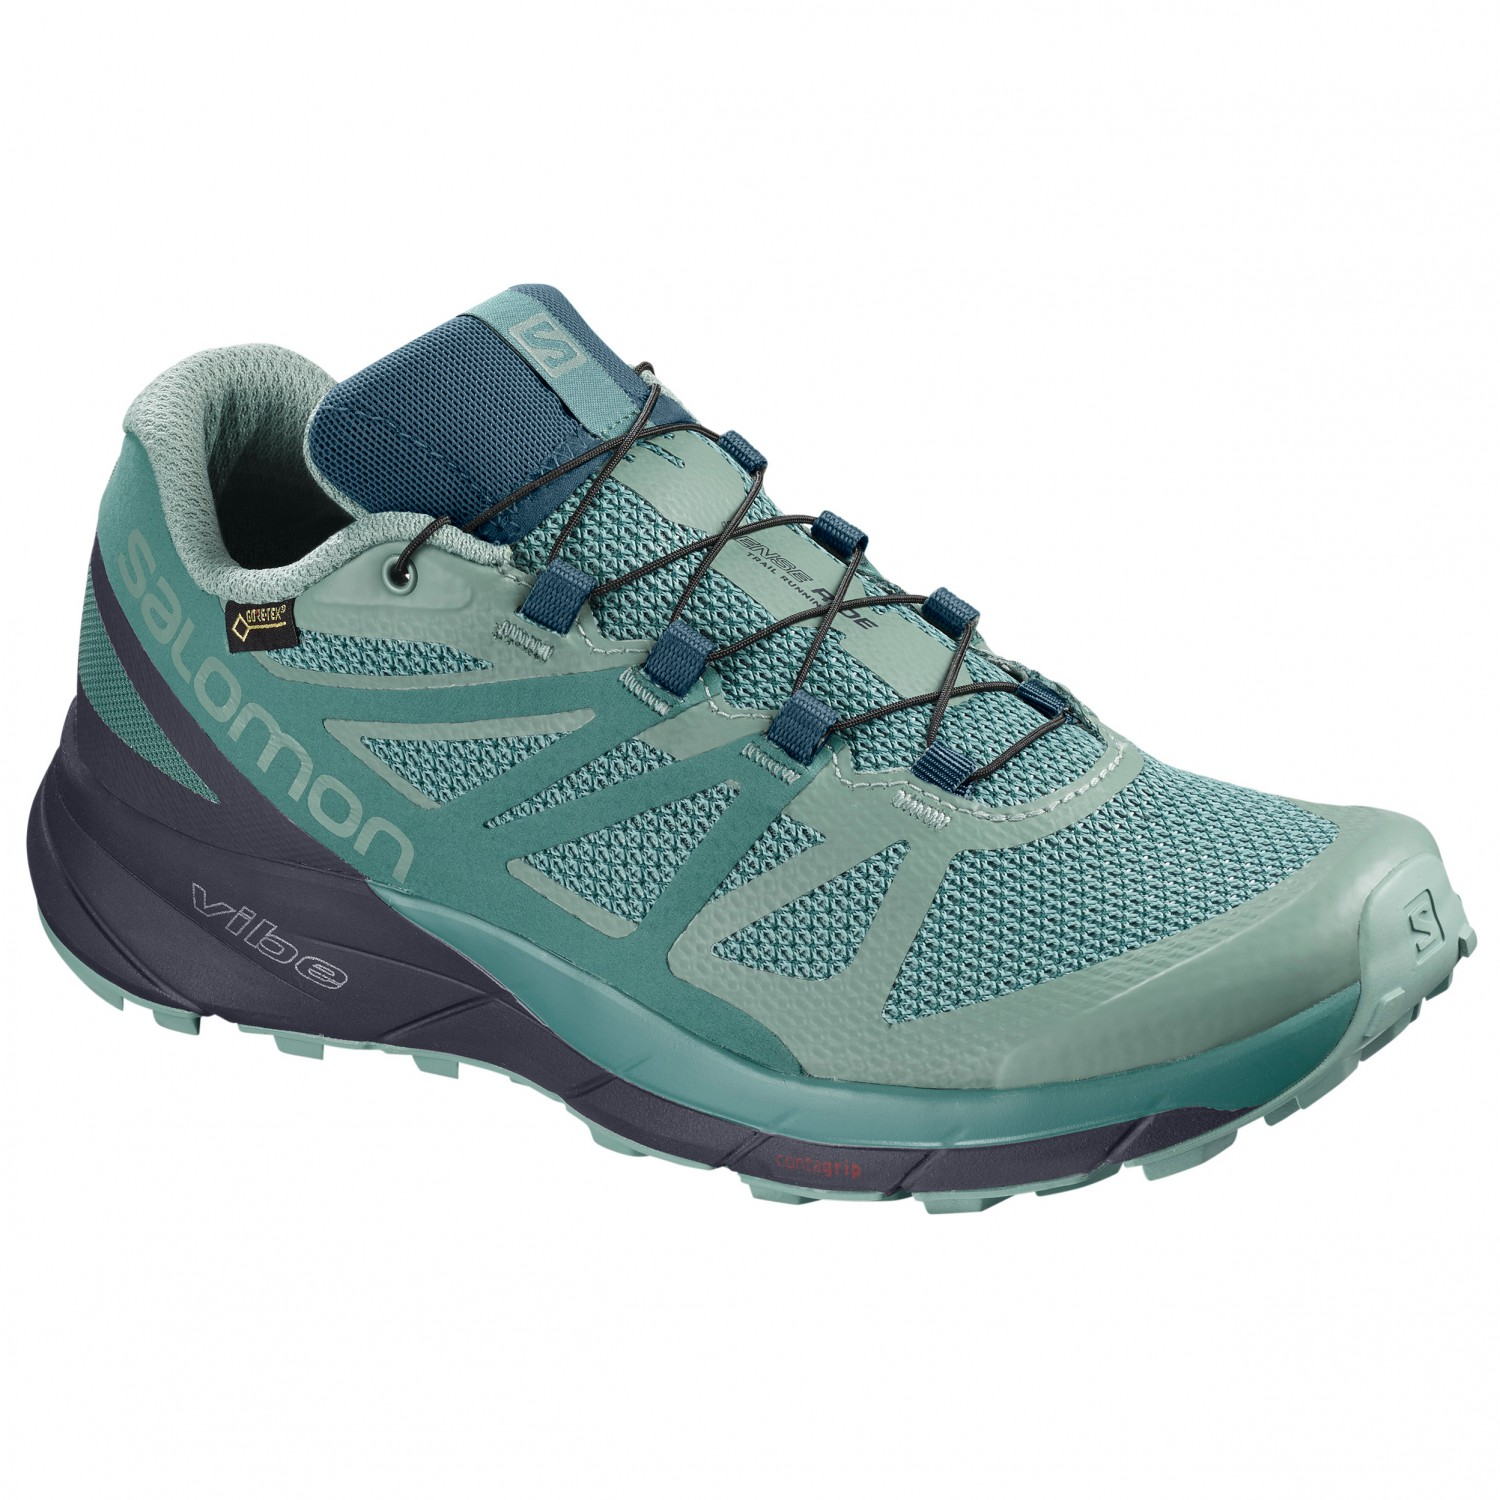 Donna Porto Per Fit Scarpe Gtx Salomon Sense Invisible Ride 0qwSn7x8 ef8e2558c6c